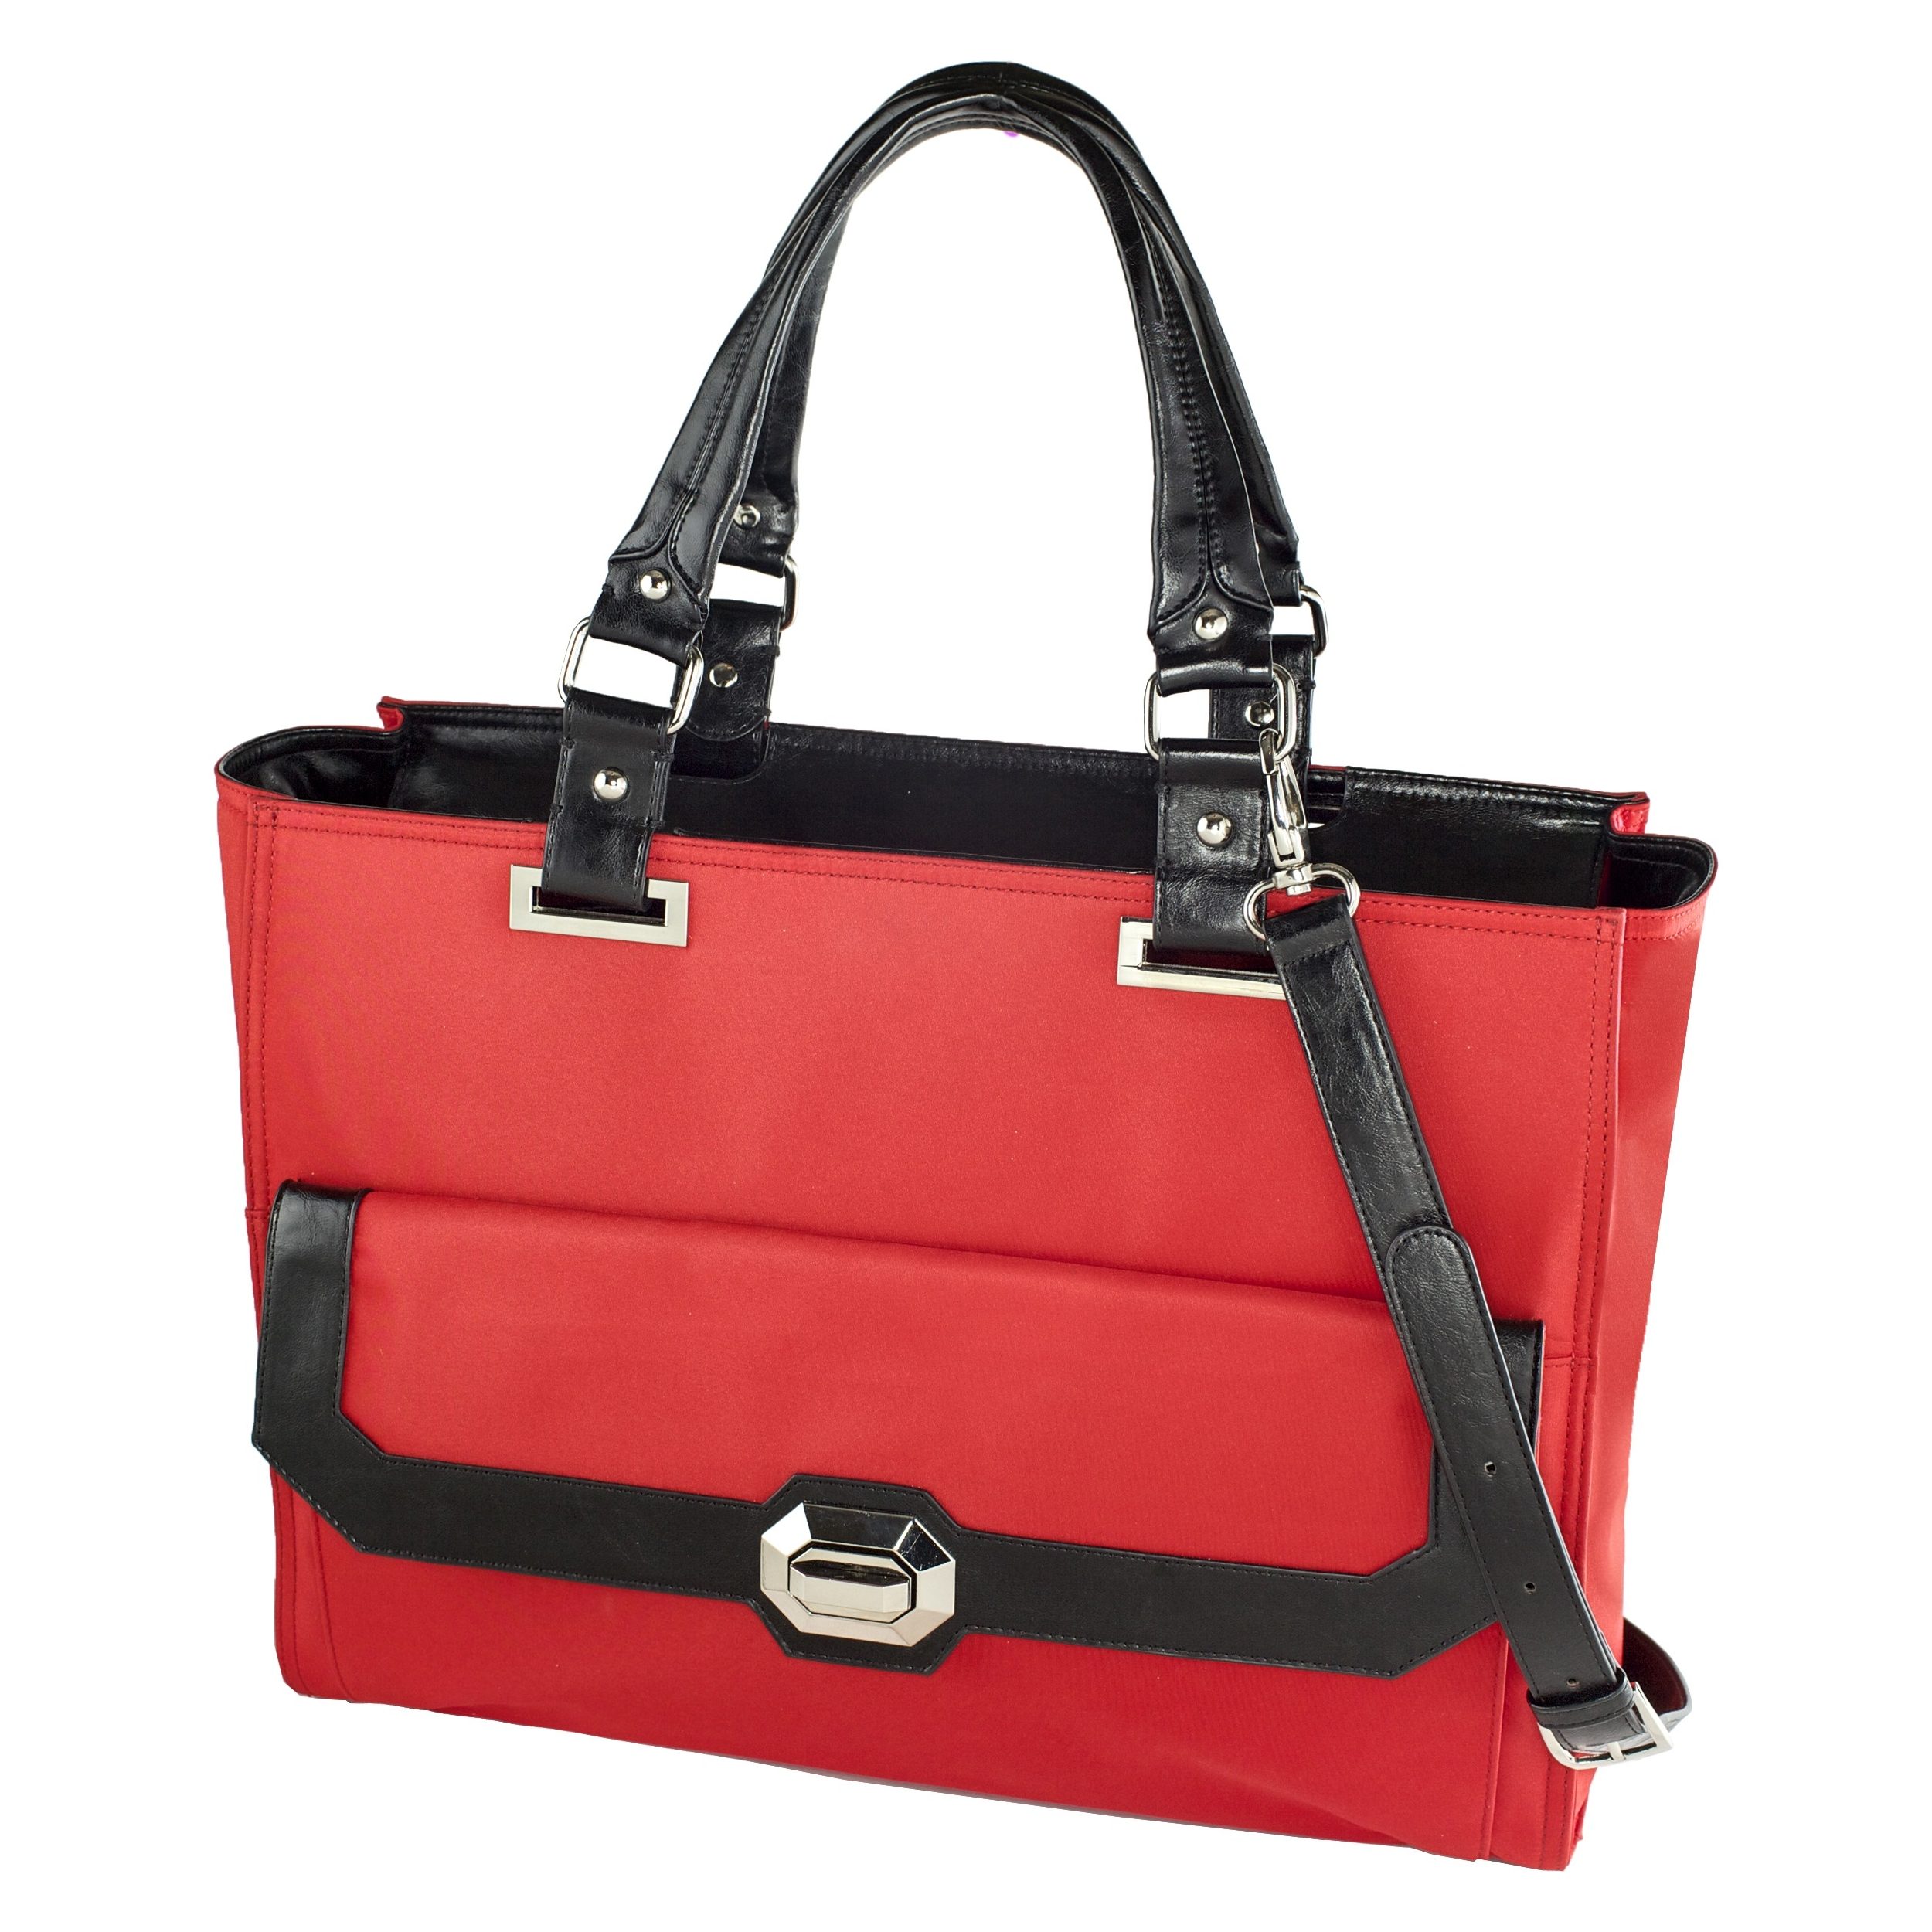 "Madison Francine Collection Carrying Case for 15.6"" Notebook - Black, Red - MicroFiber, Leather - Shoulder Strap - 12.5"" Height x 17"" Width x 6.5"" Depth"